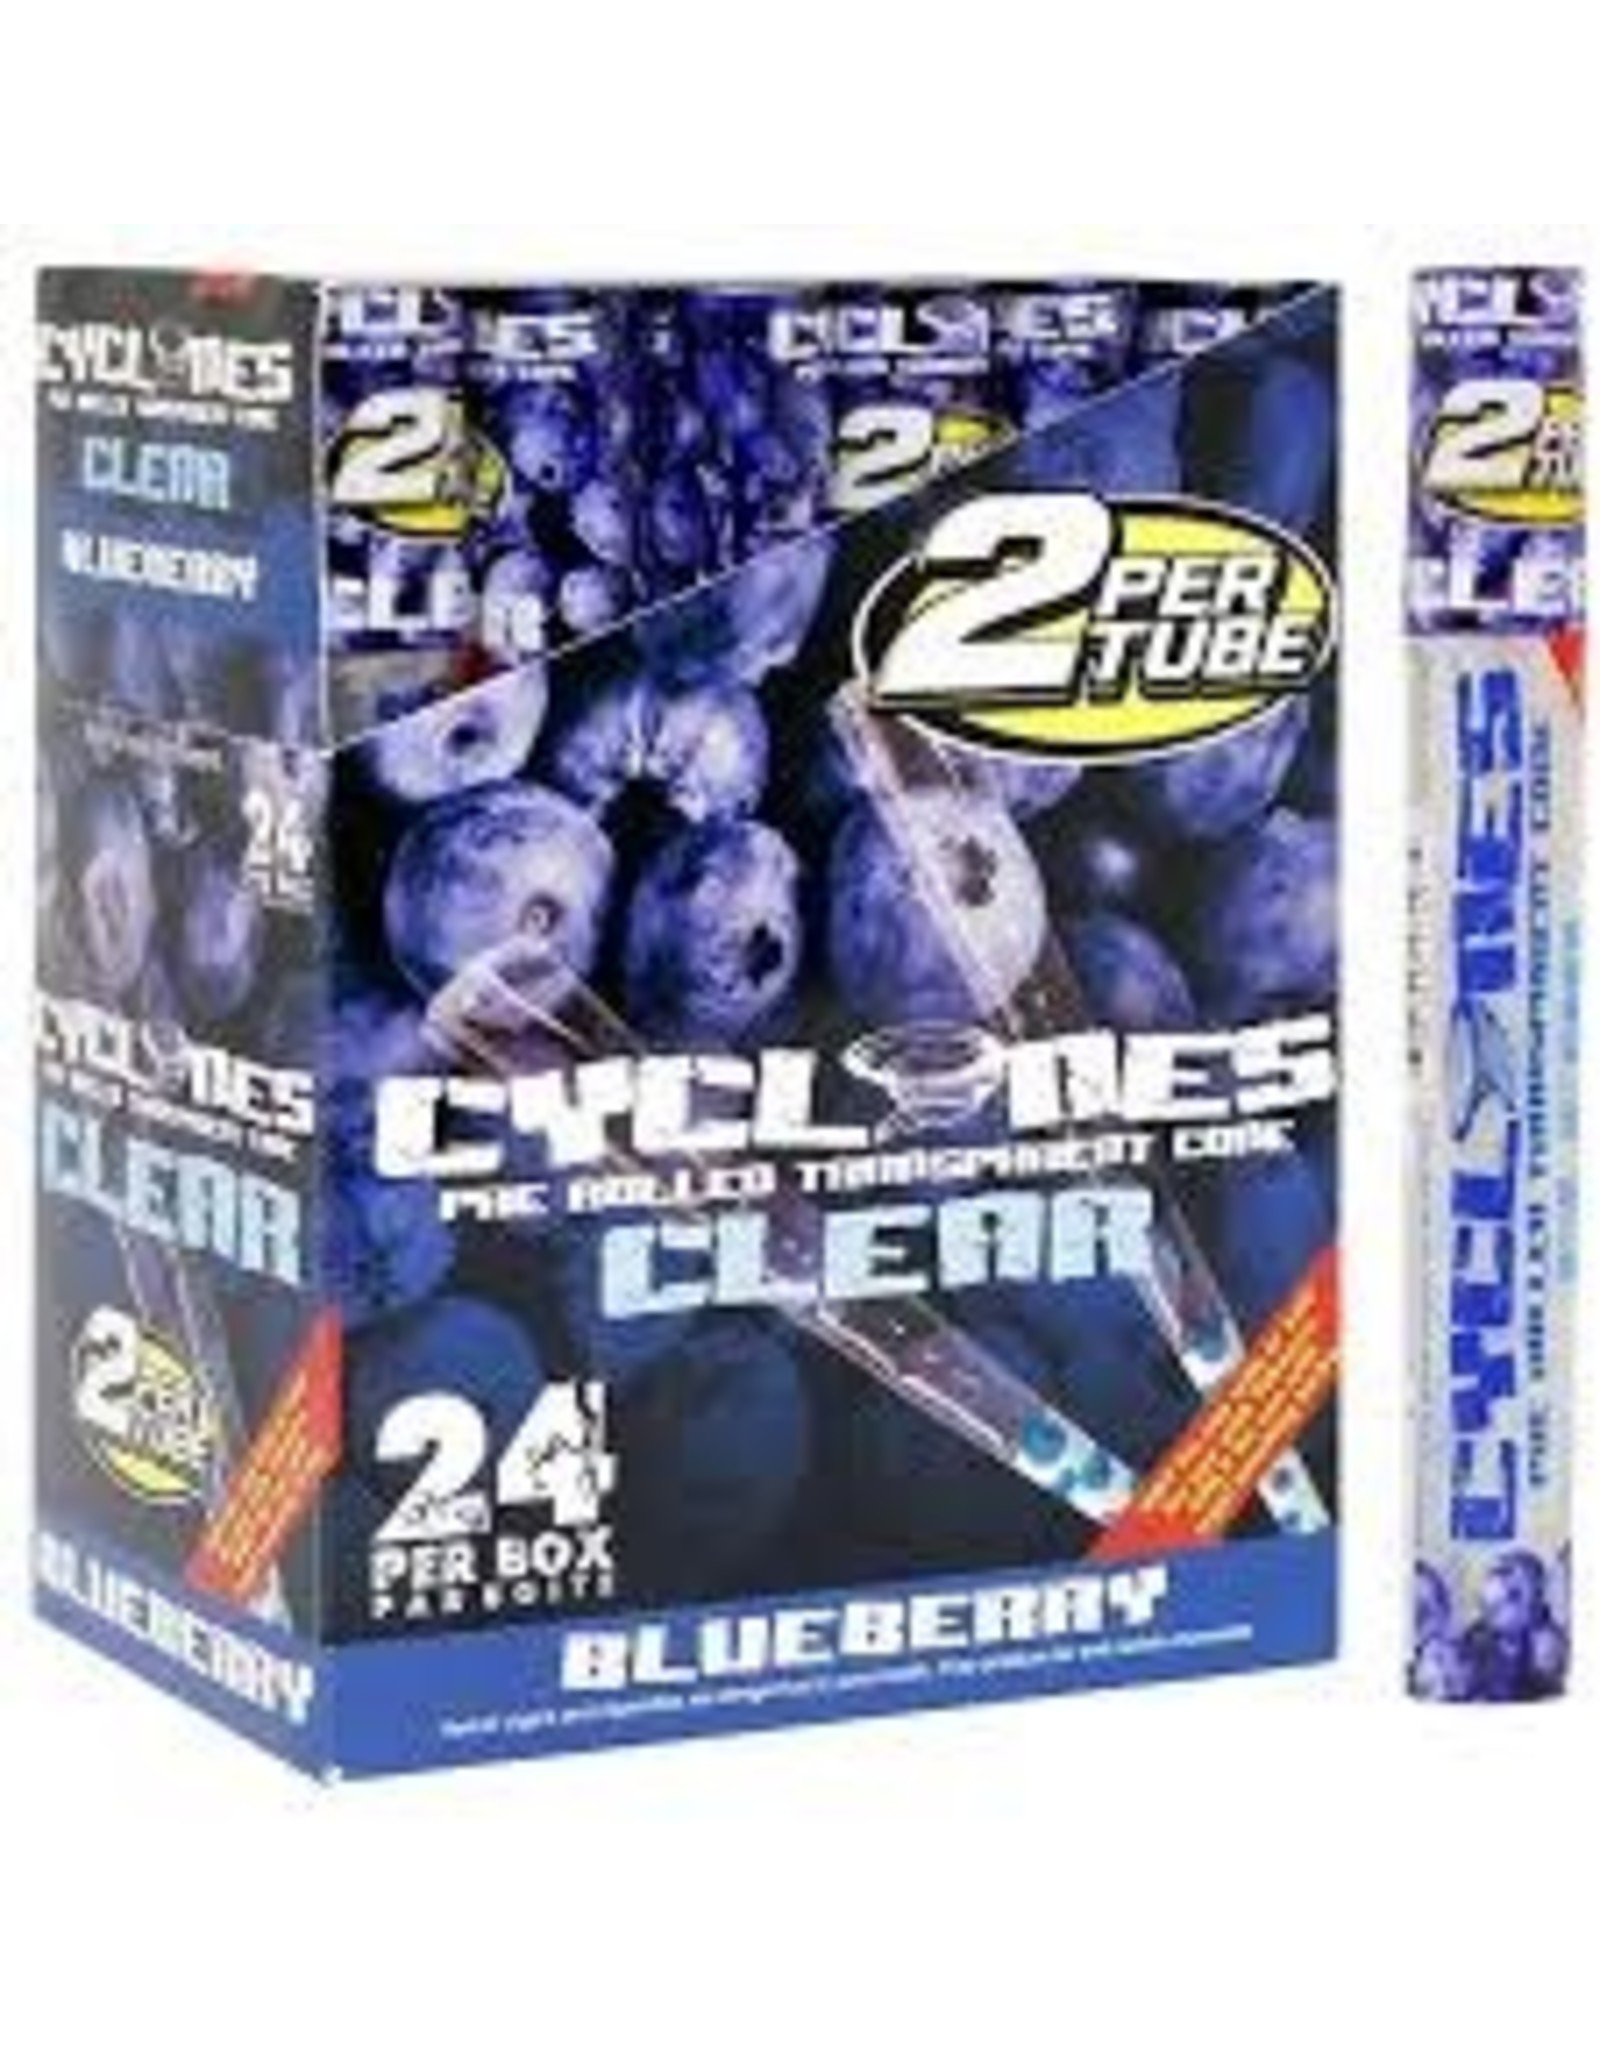 CYCLONCE CYCLONES CLEAR CONE BLUEBERRY